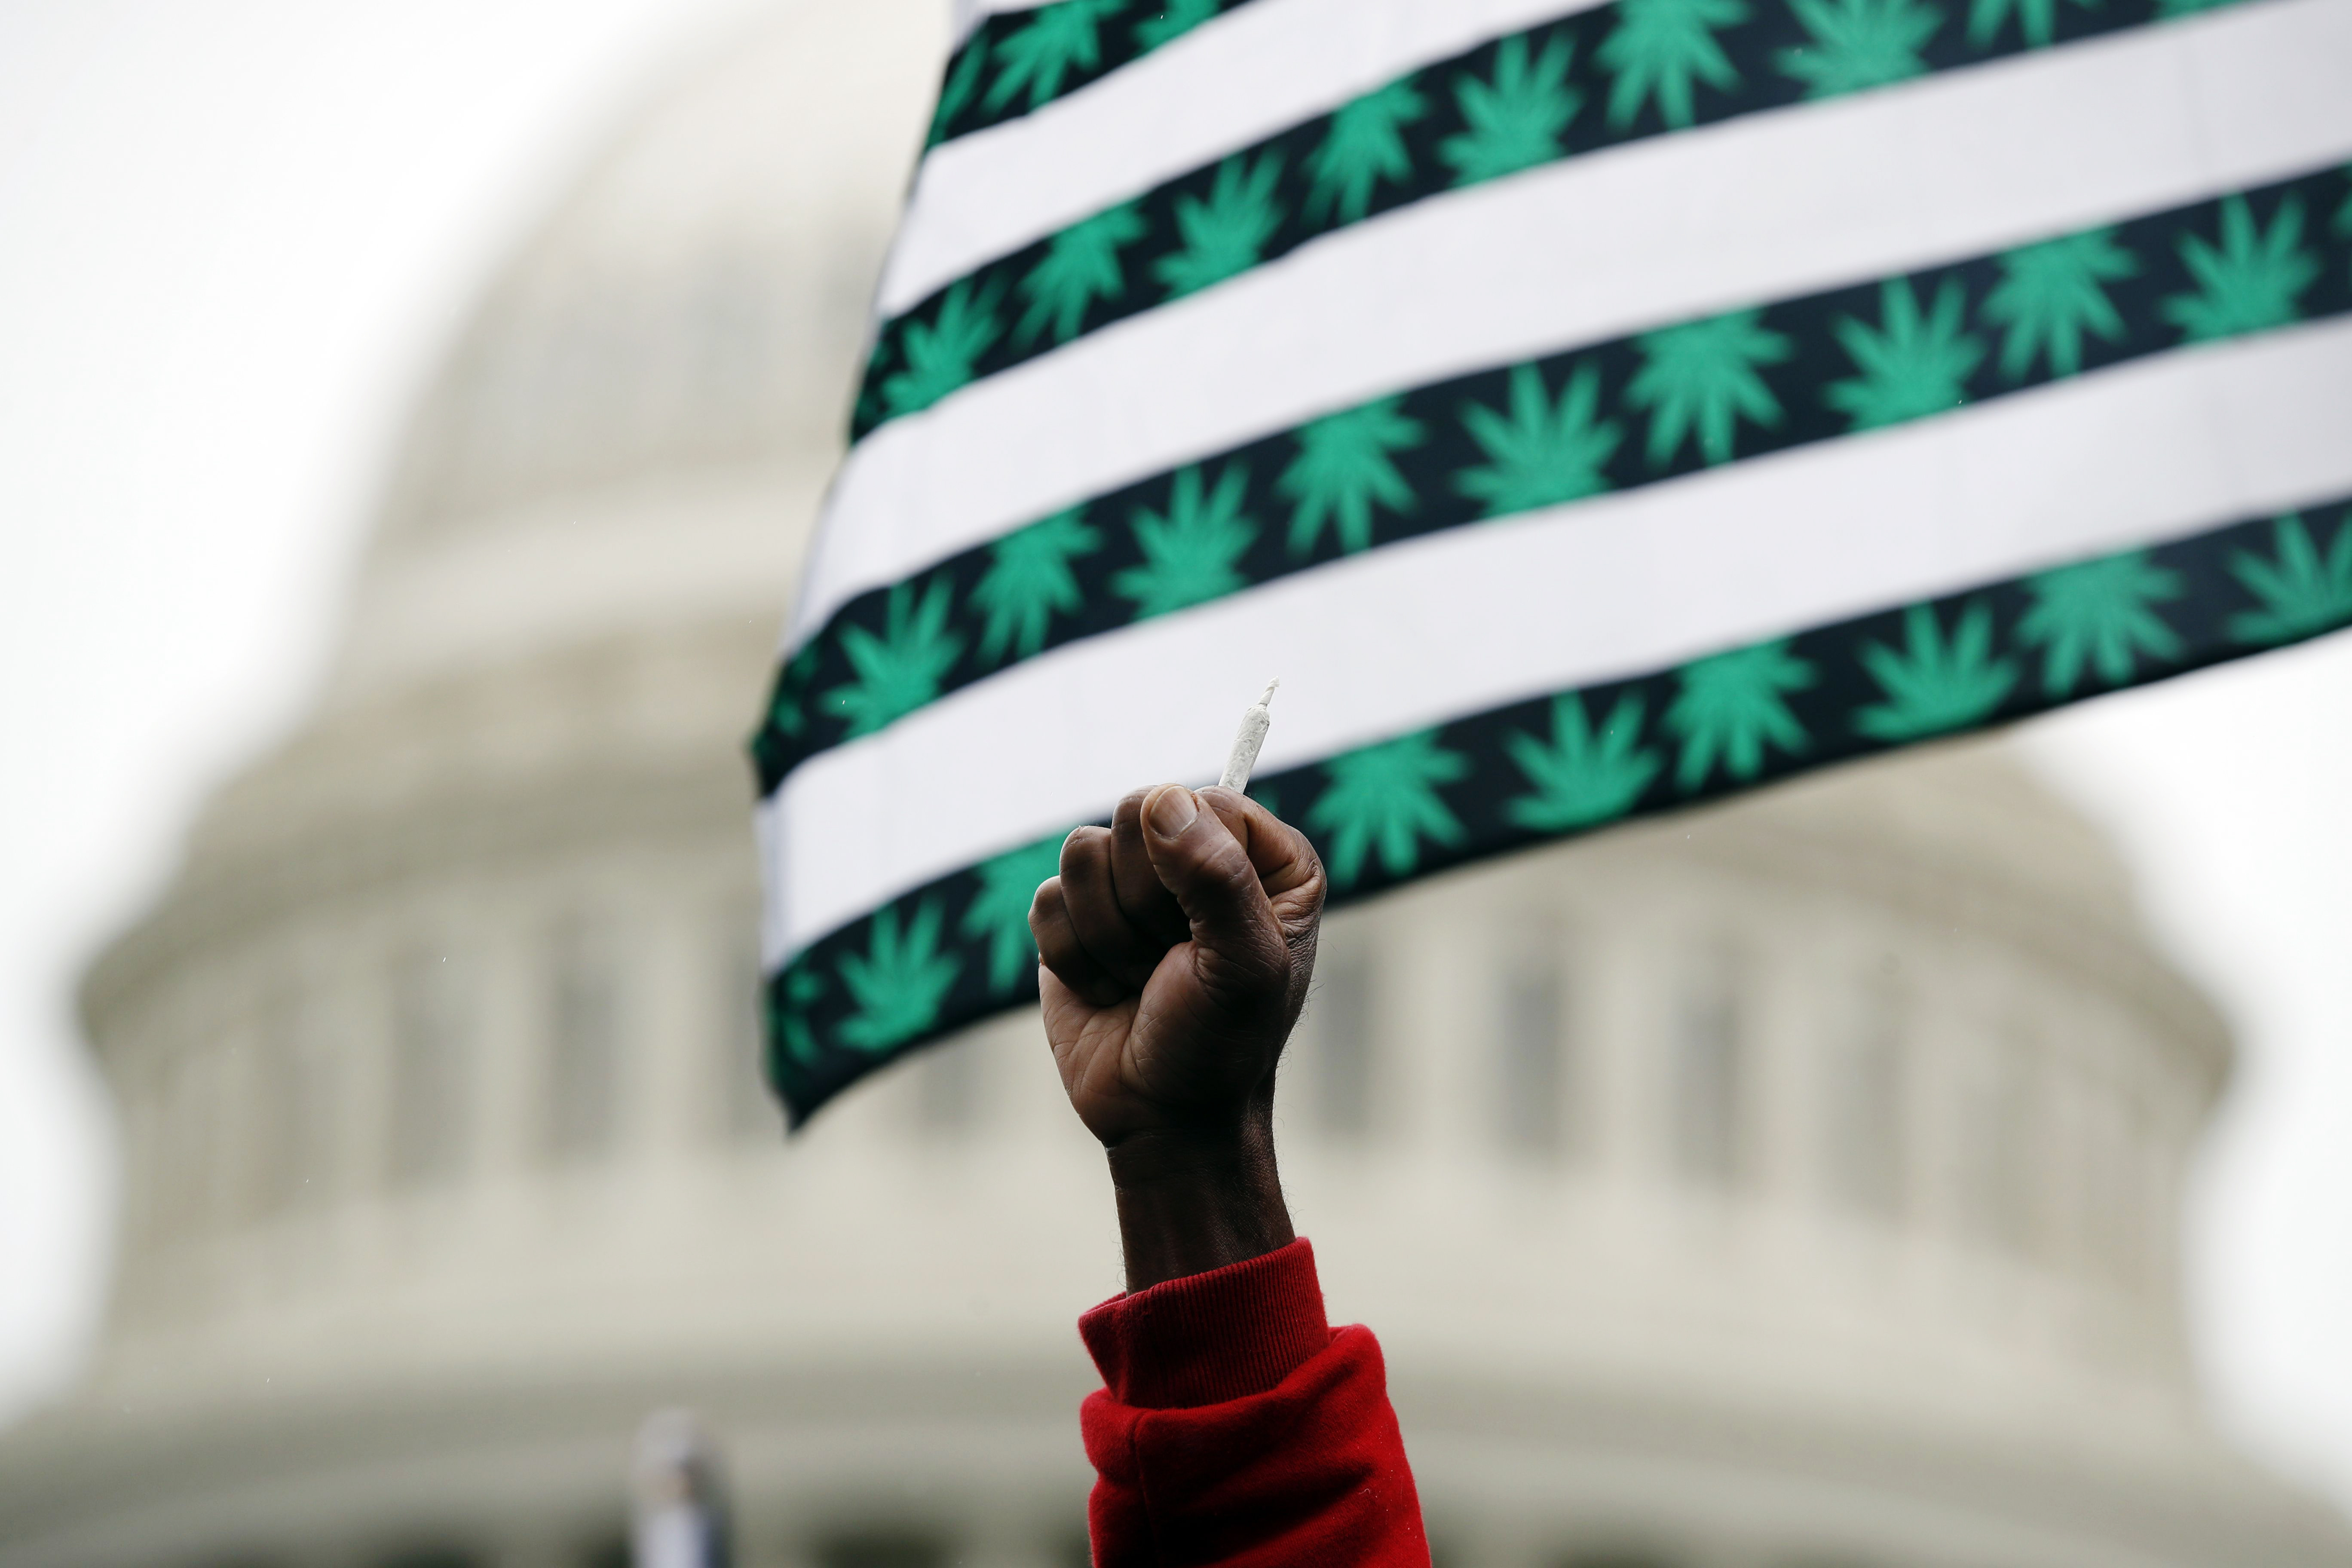 Congress Opens Up Damn Near Entire >> Pot For All How Congress Is Trying To Make Weed Legal Rolling Stone